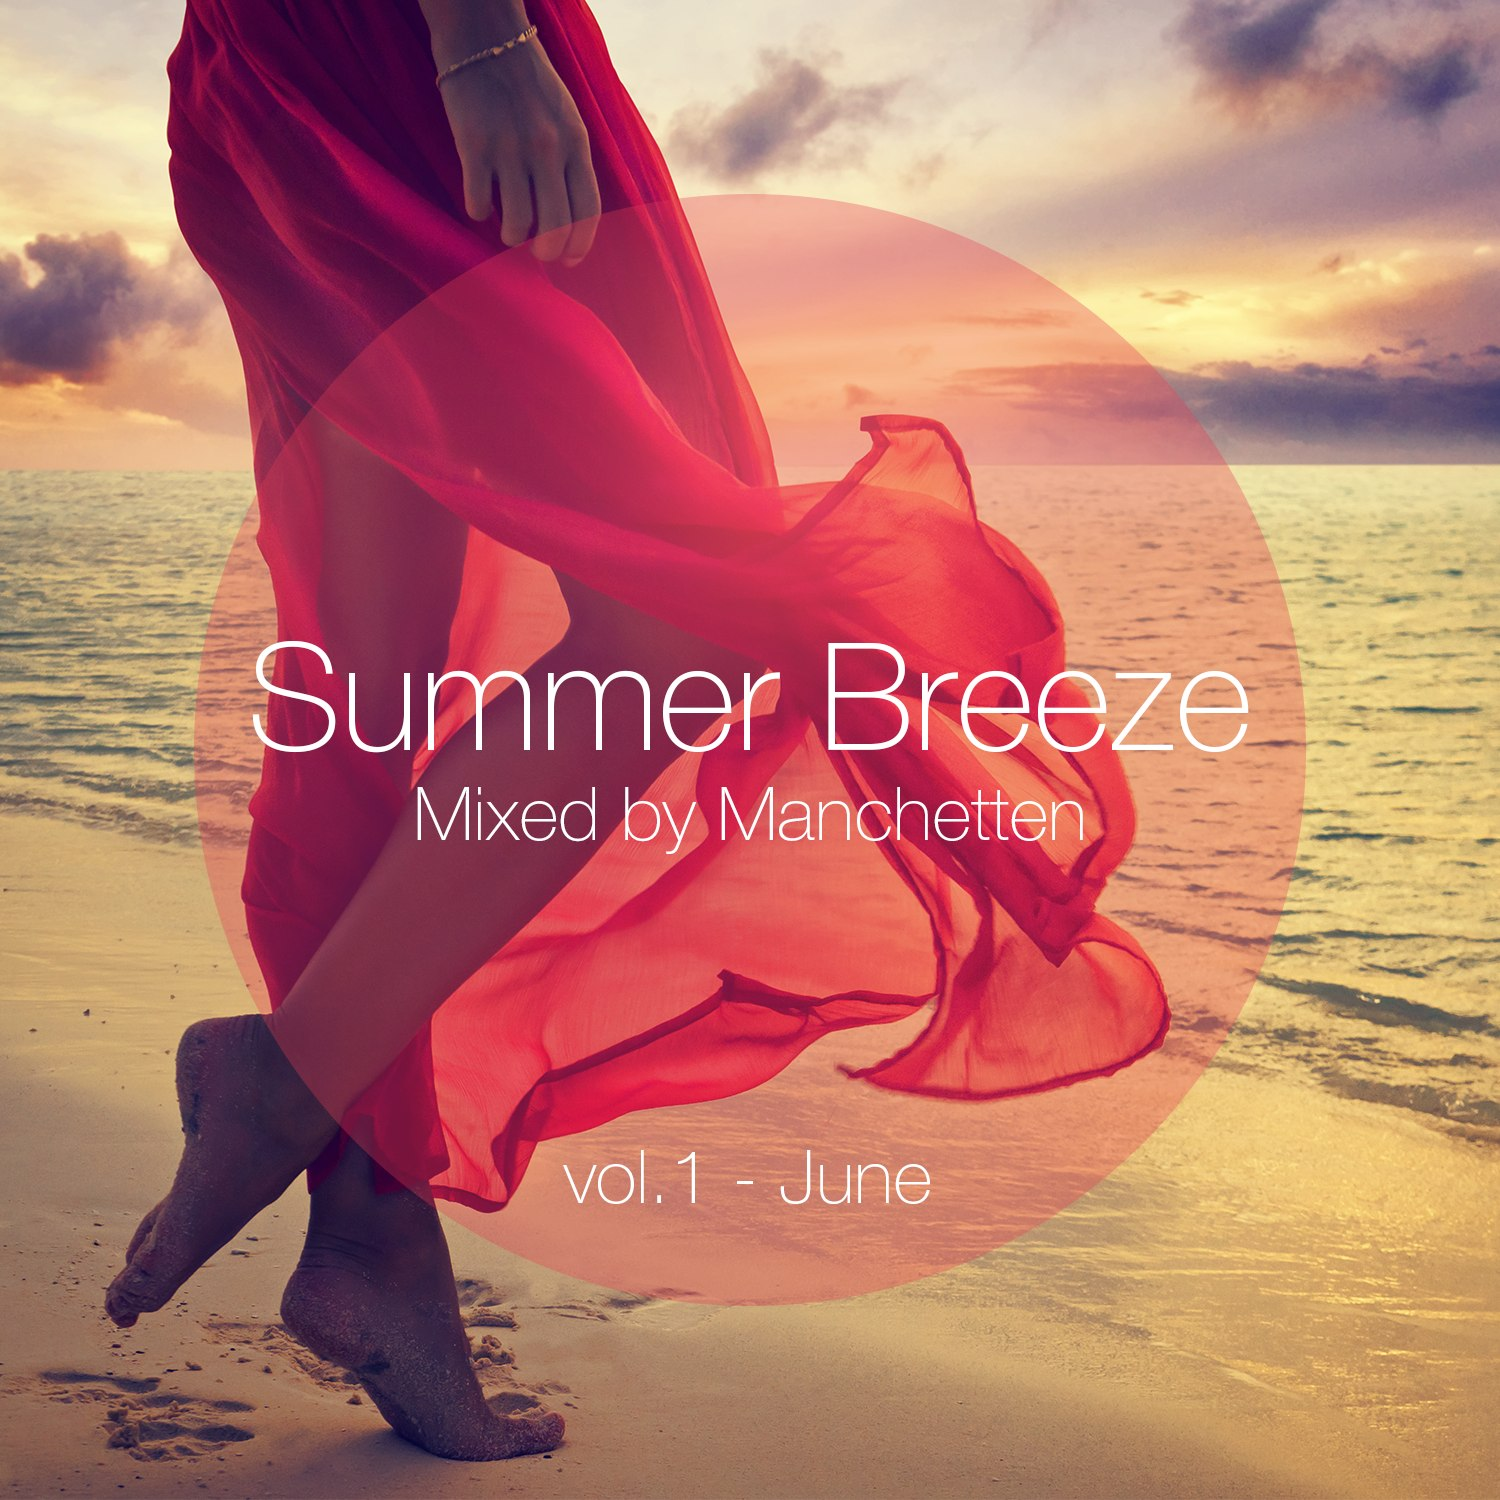 Summer Breeze vol. 1